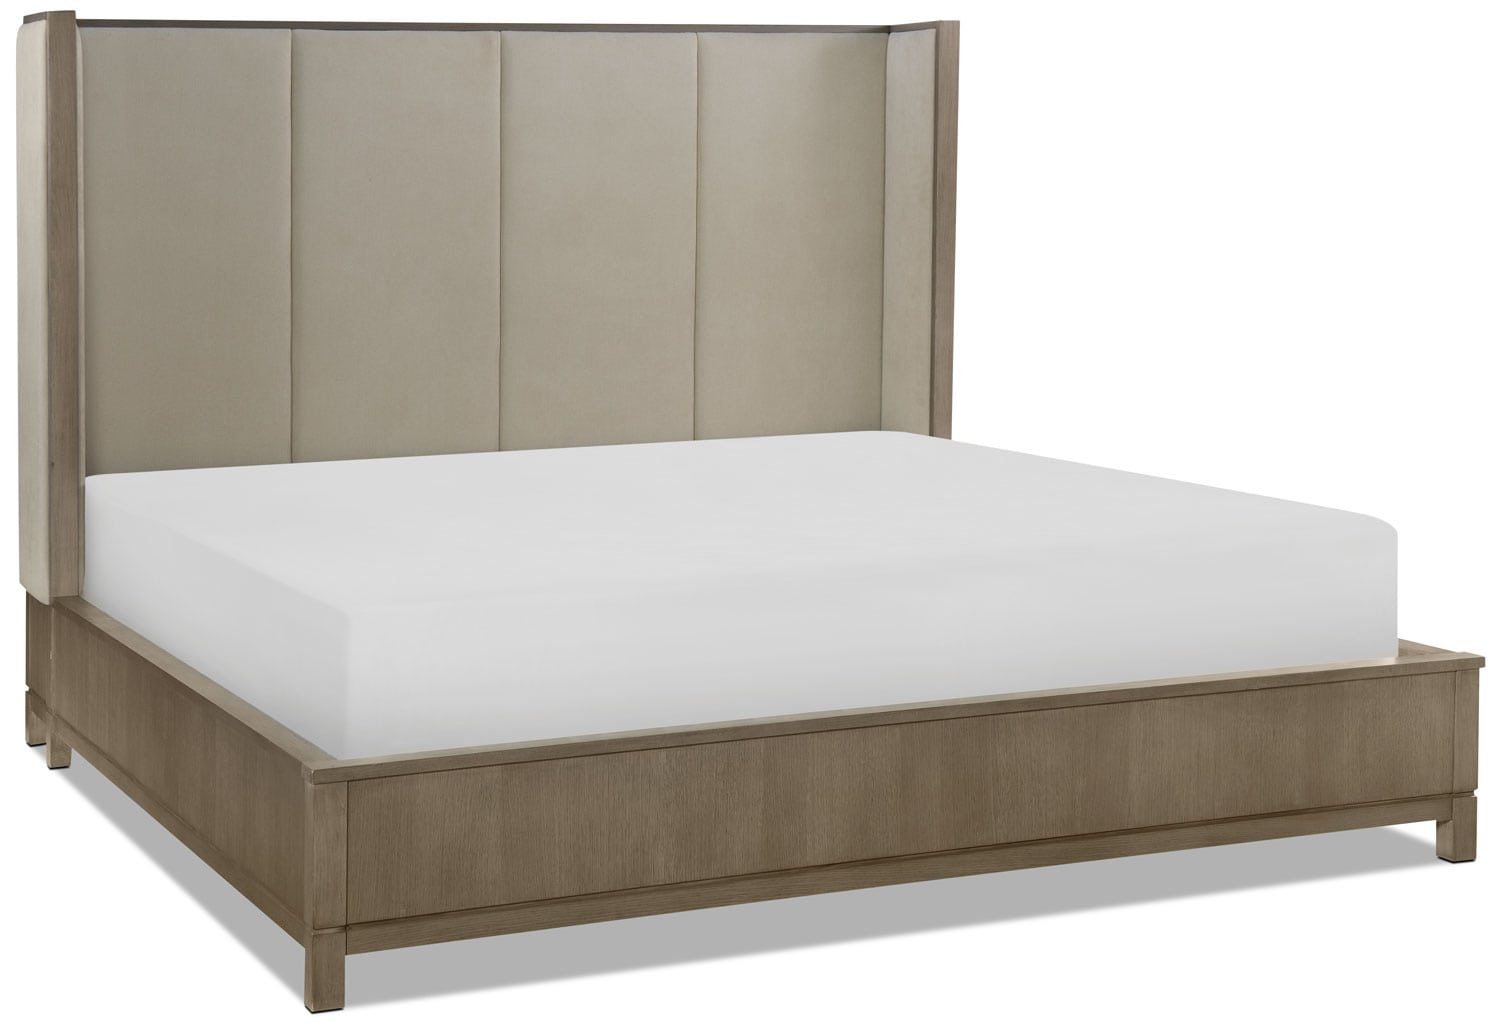 Rachael Ray Highline Queen Shelter Bed - Greige